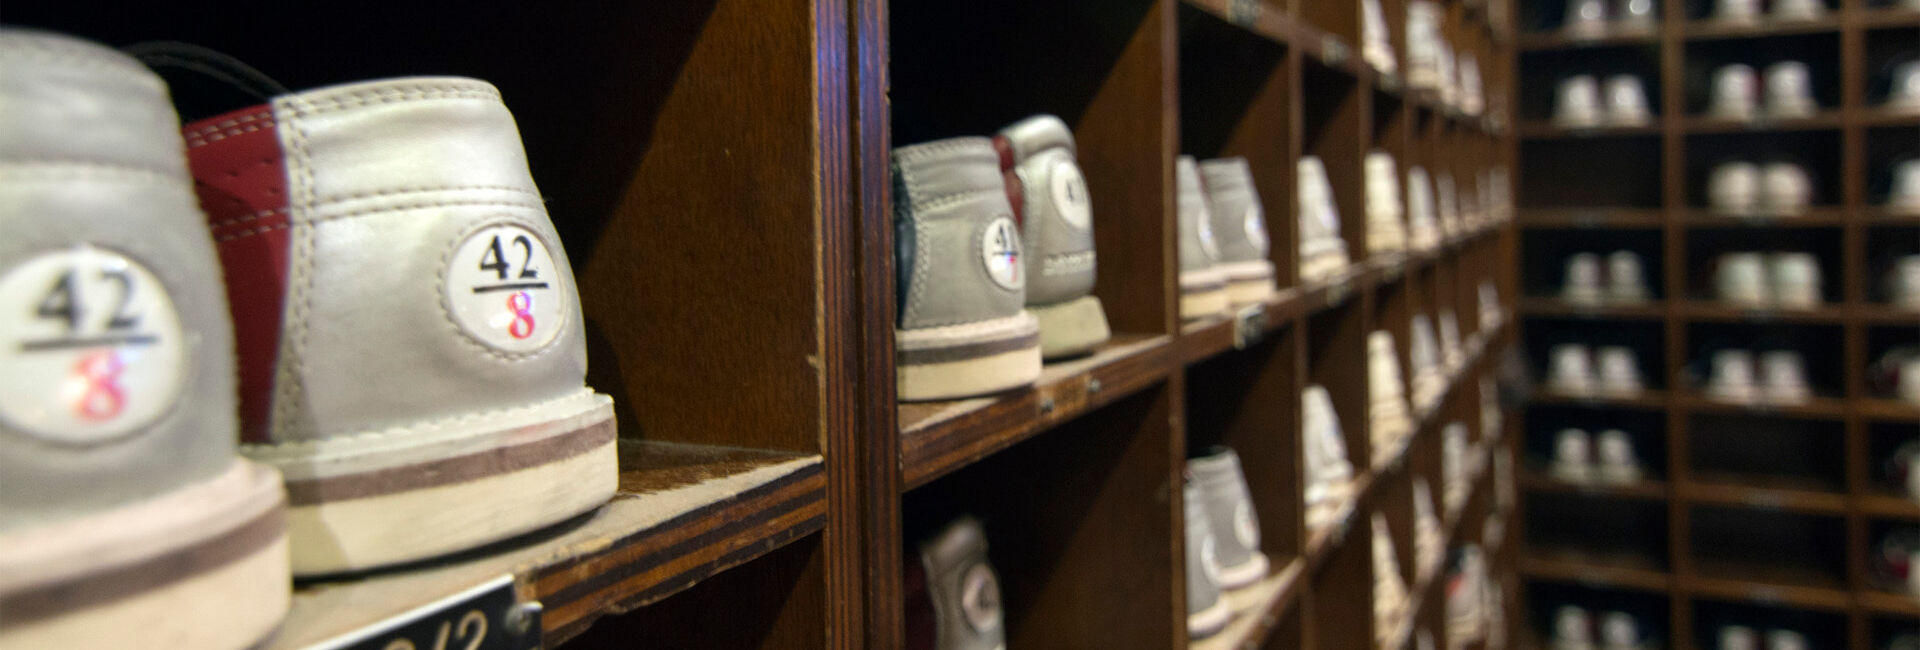 Shelves with bowling shoes in various sizes